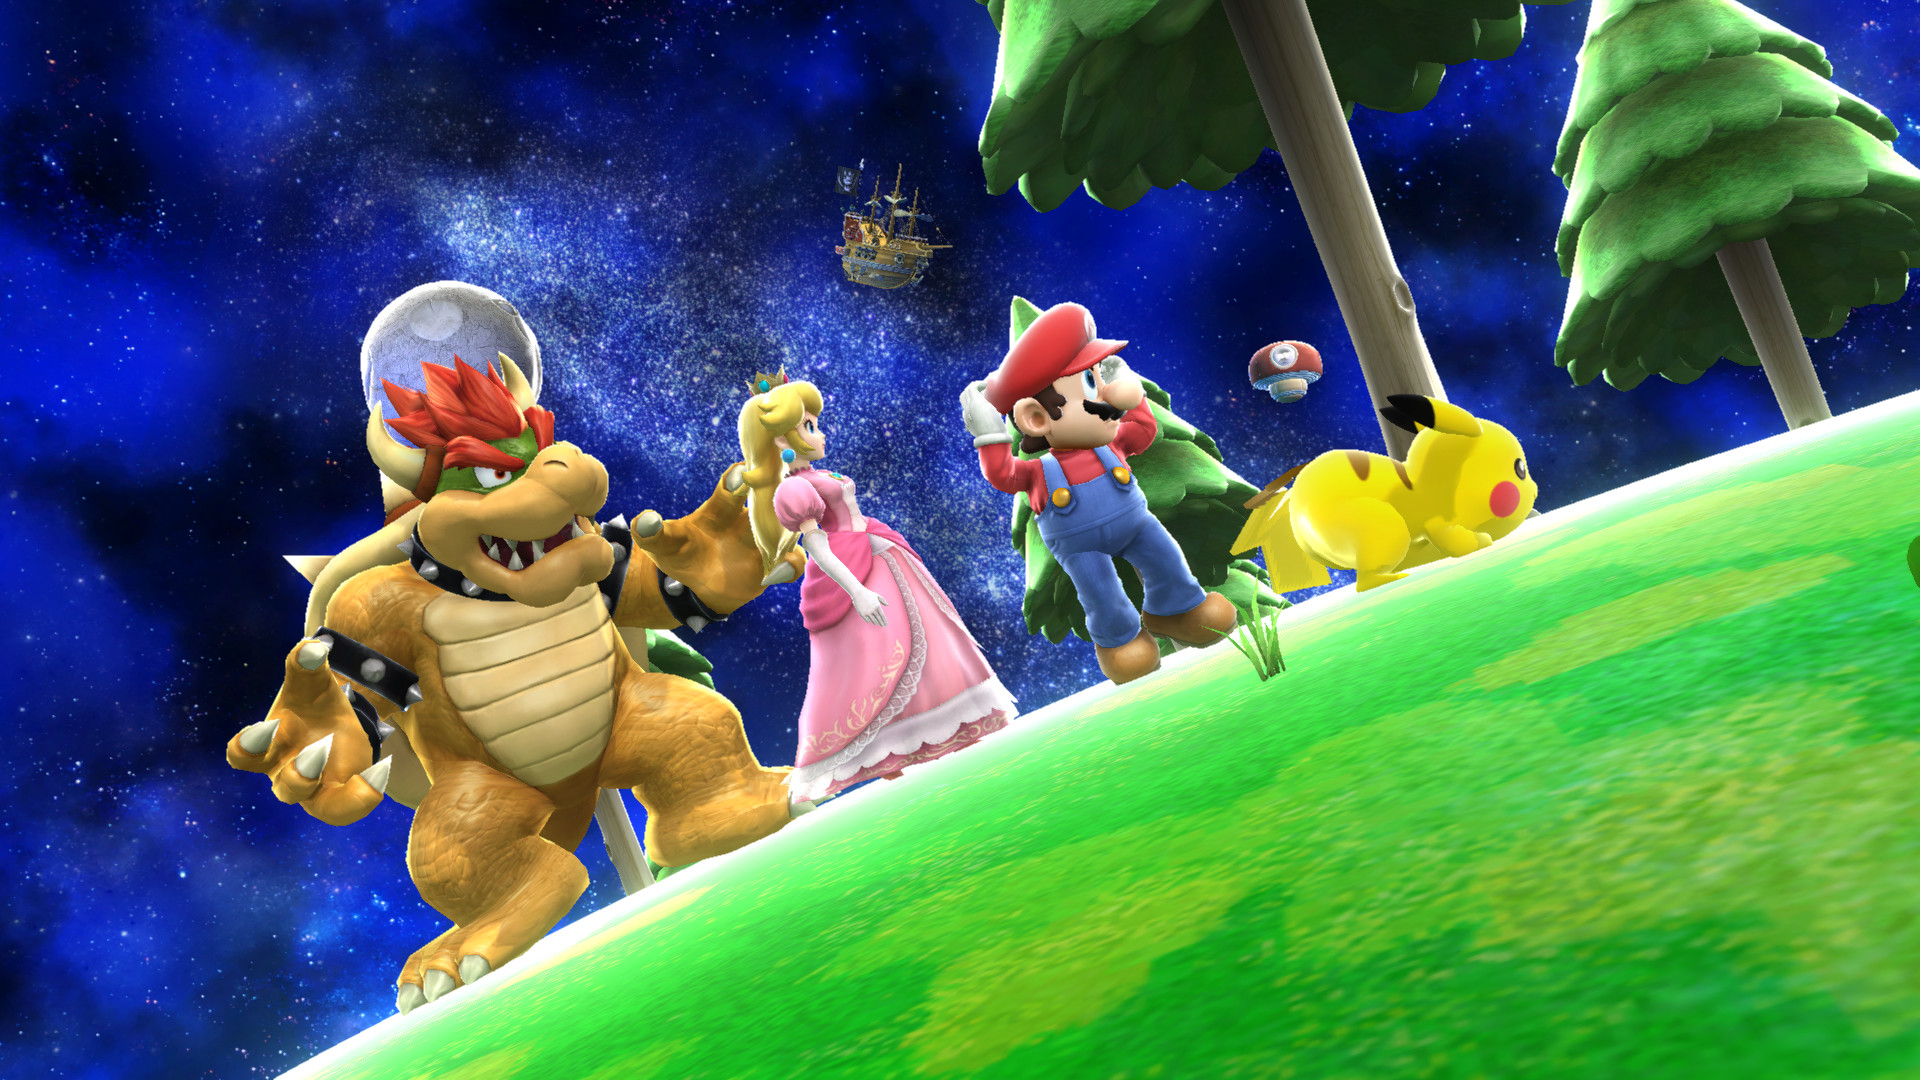 1920x1080 ... Mario, Peach, Bowser, and Pikachu Smash Bros by Rosalina-Luma